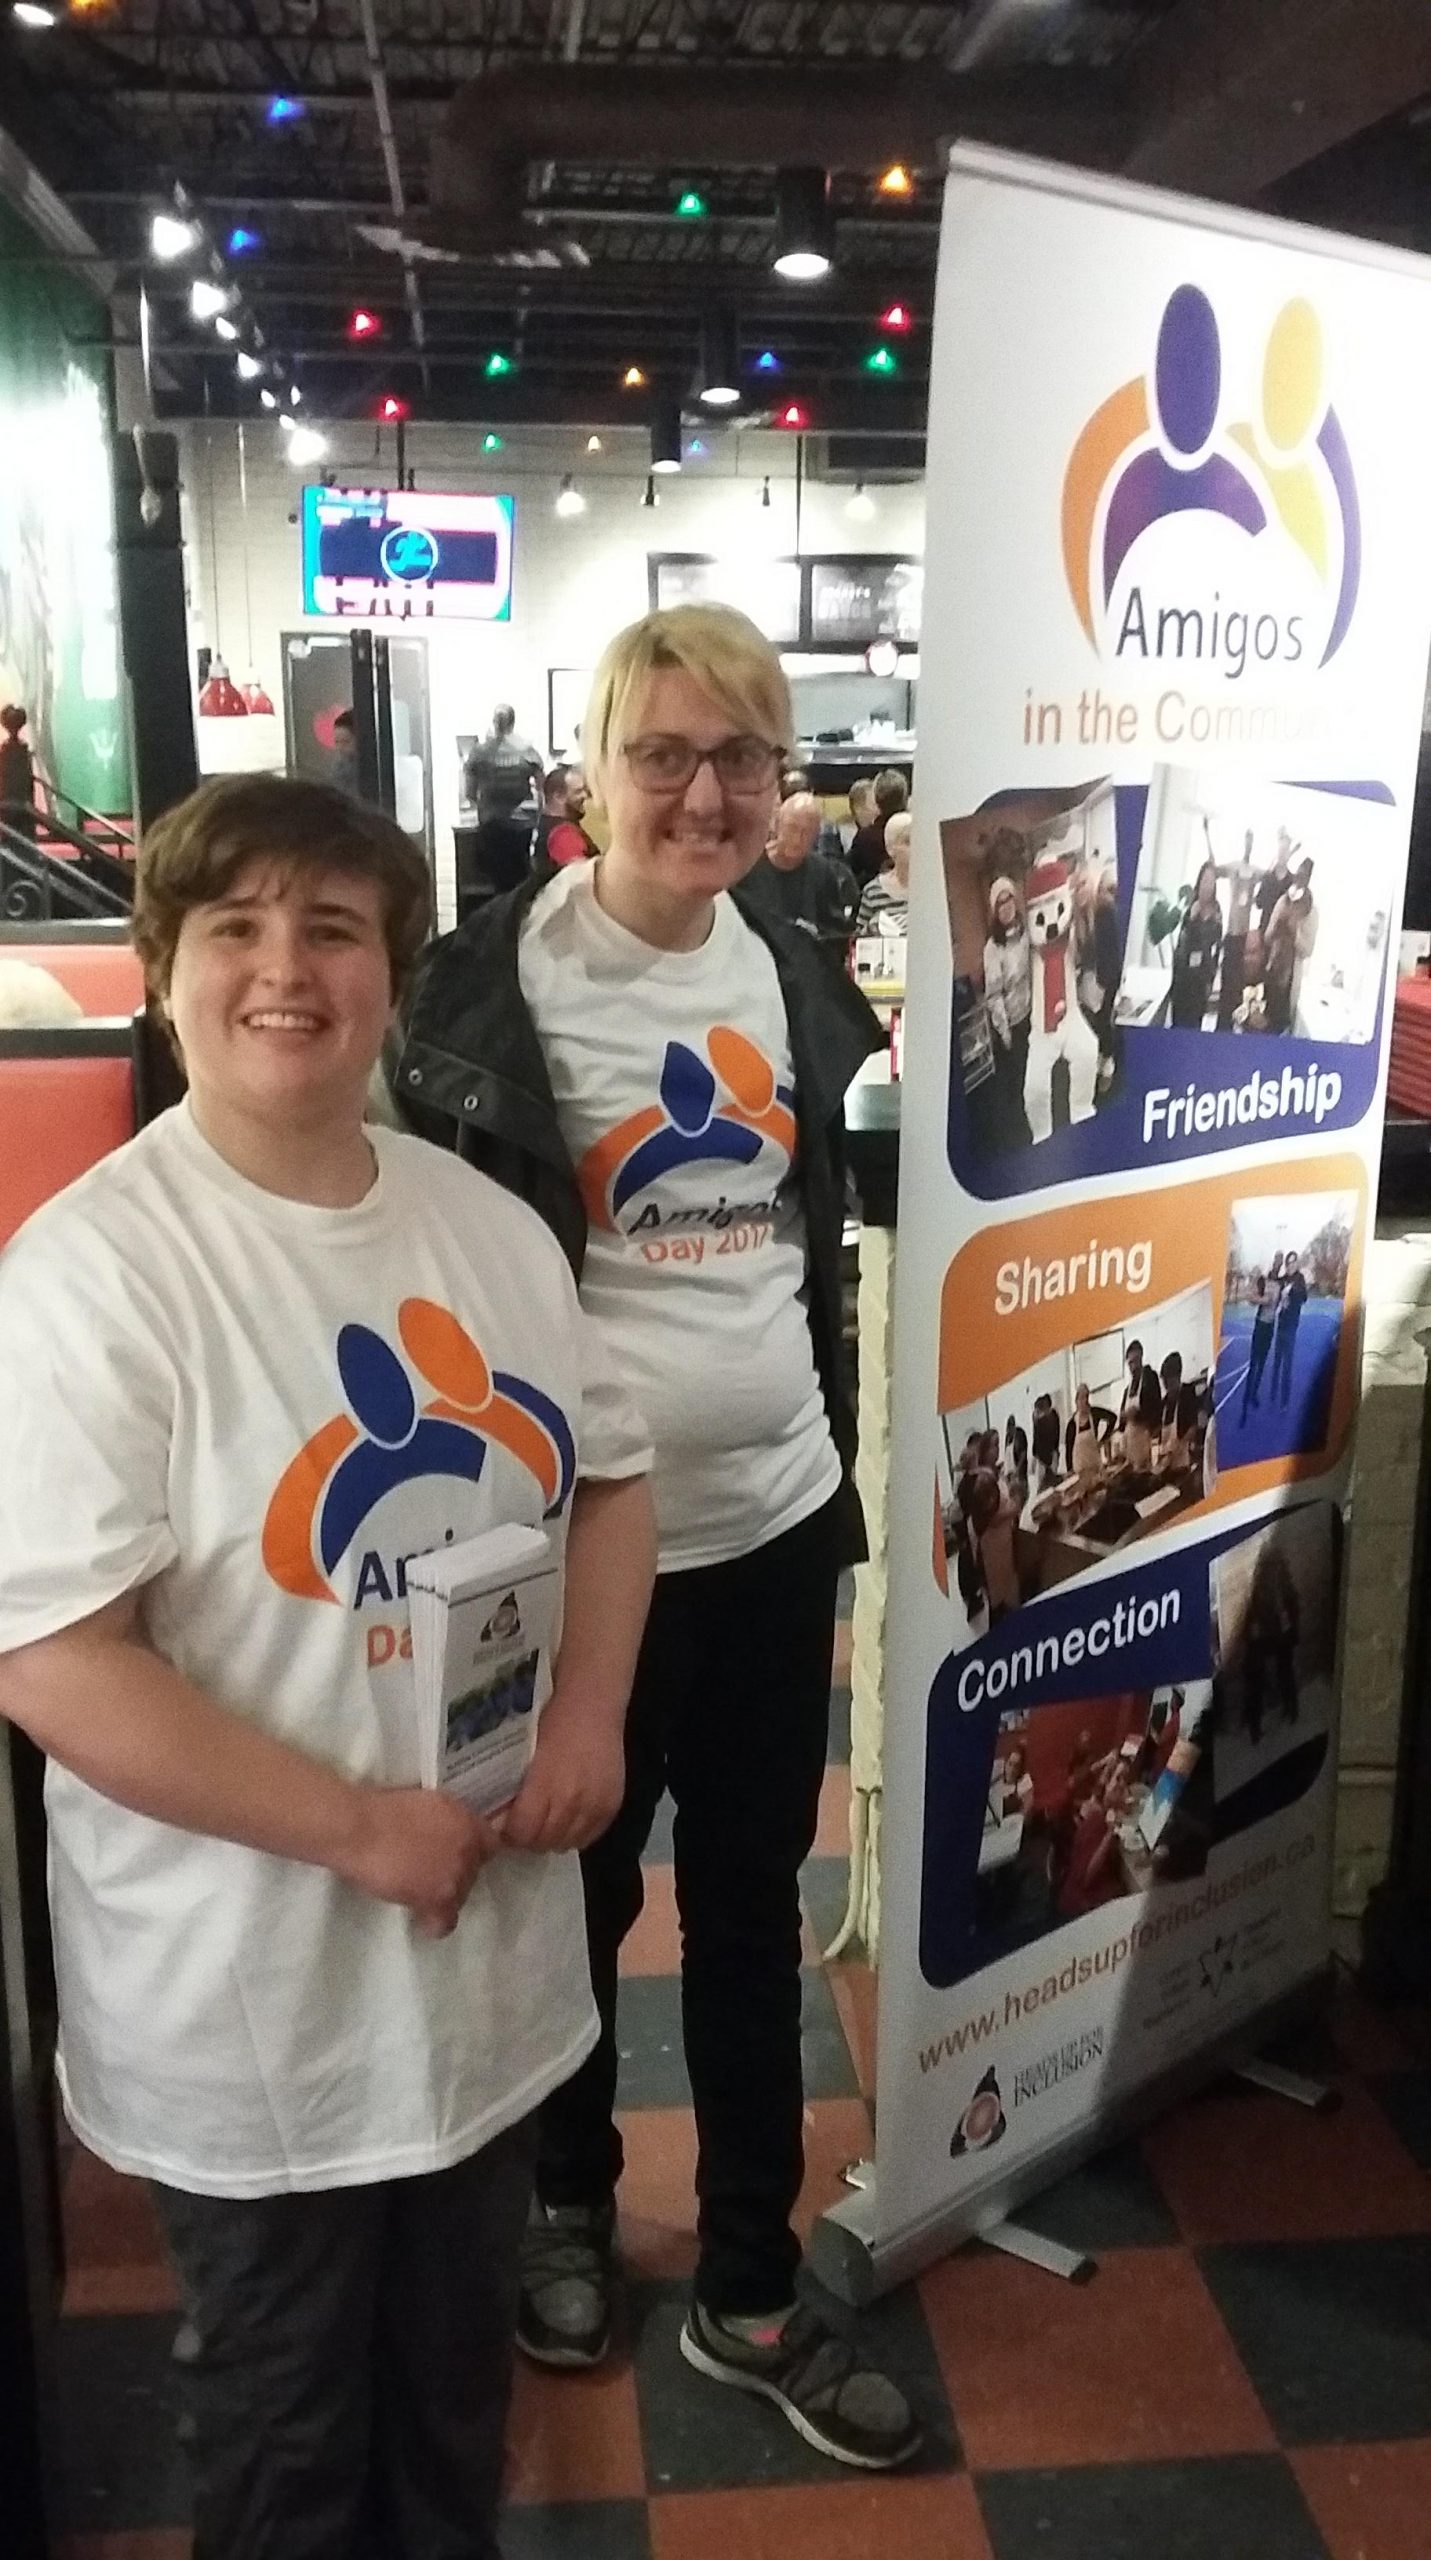 Two women in Amigos T-shirts standing beside a banner.